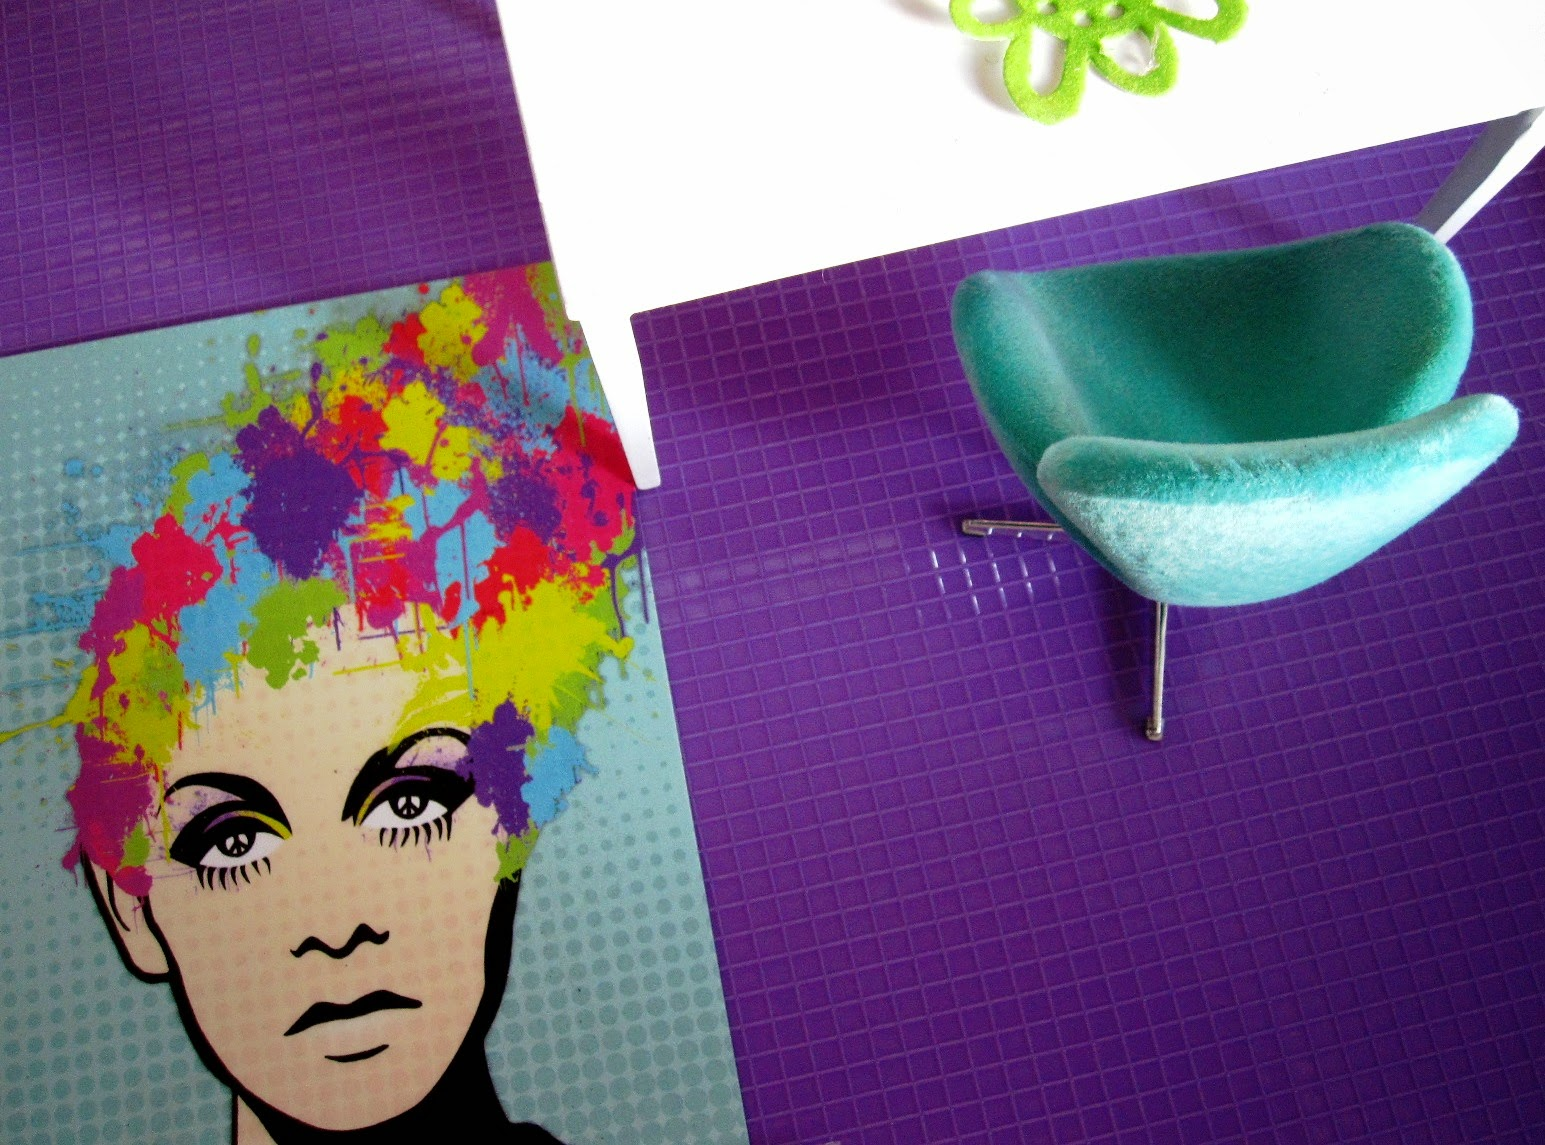 Modern dolls house white table, swan chair, colourful postcard and purple tiled floor:view from above.